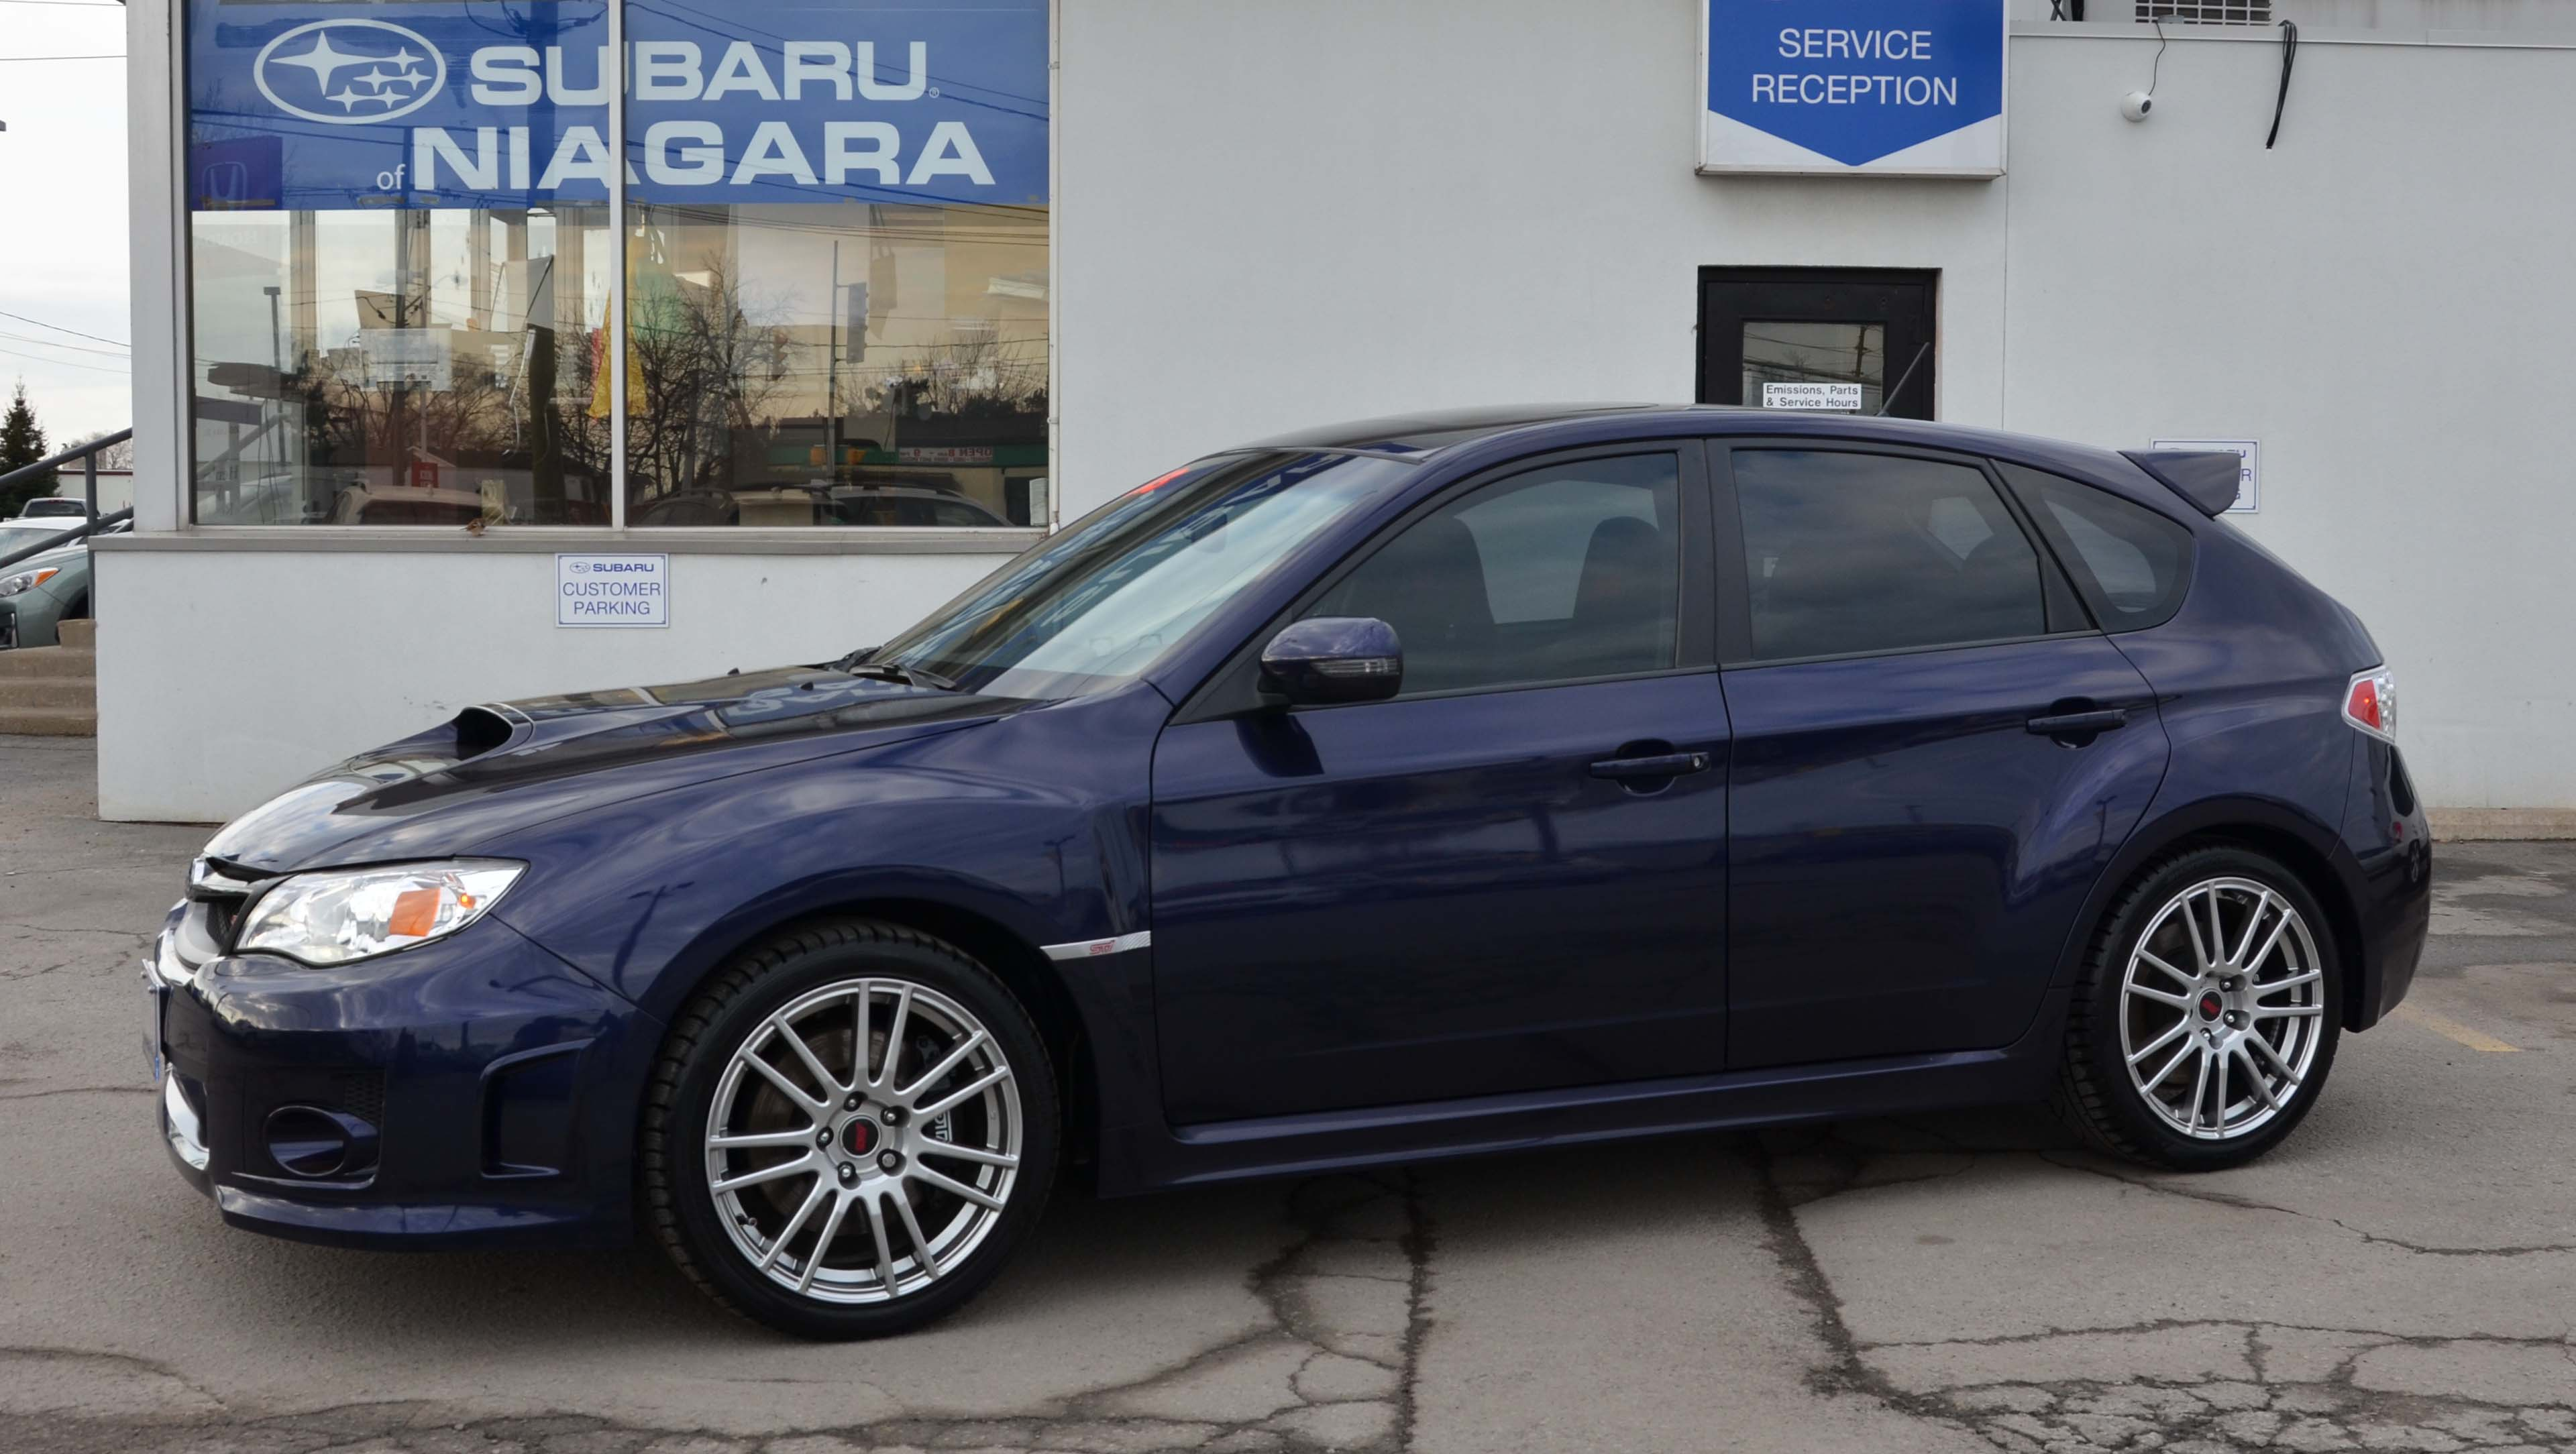 Ssuper Rare 2013 Subaru Sti For Sale Subaru Of Niagara